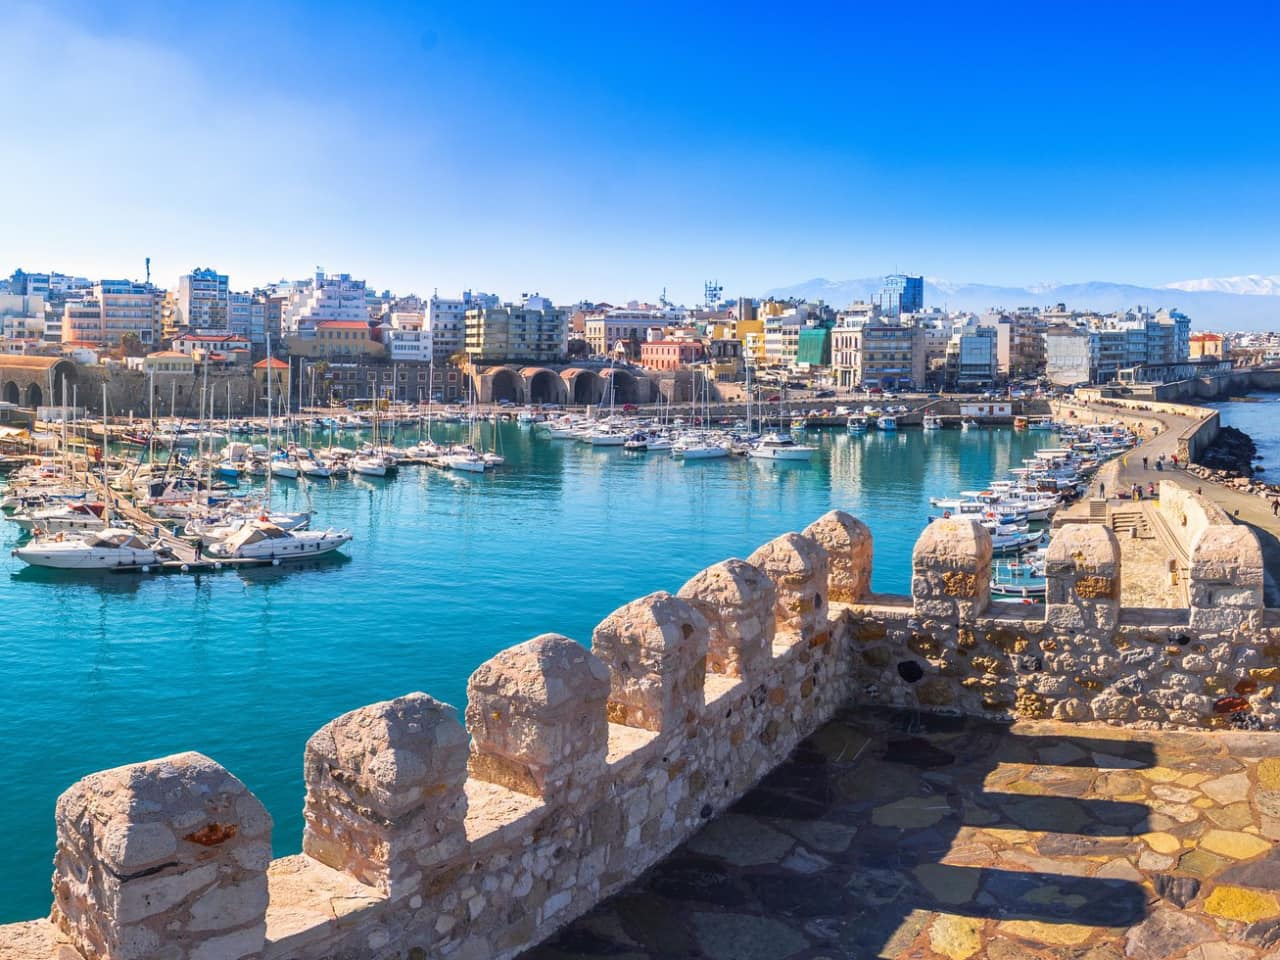 Heraklion travel guide, iraklion travel guide, heraklion things to do, heraklion activities, history of heraklion, museums heraklion, restaurants iraklion, events heraklion, travel tips heraklion, heraklion tours, crete travel, the crete you are looking for